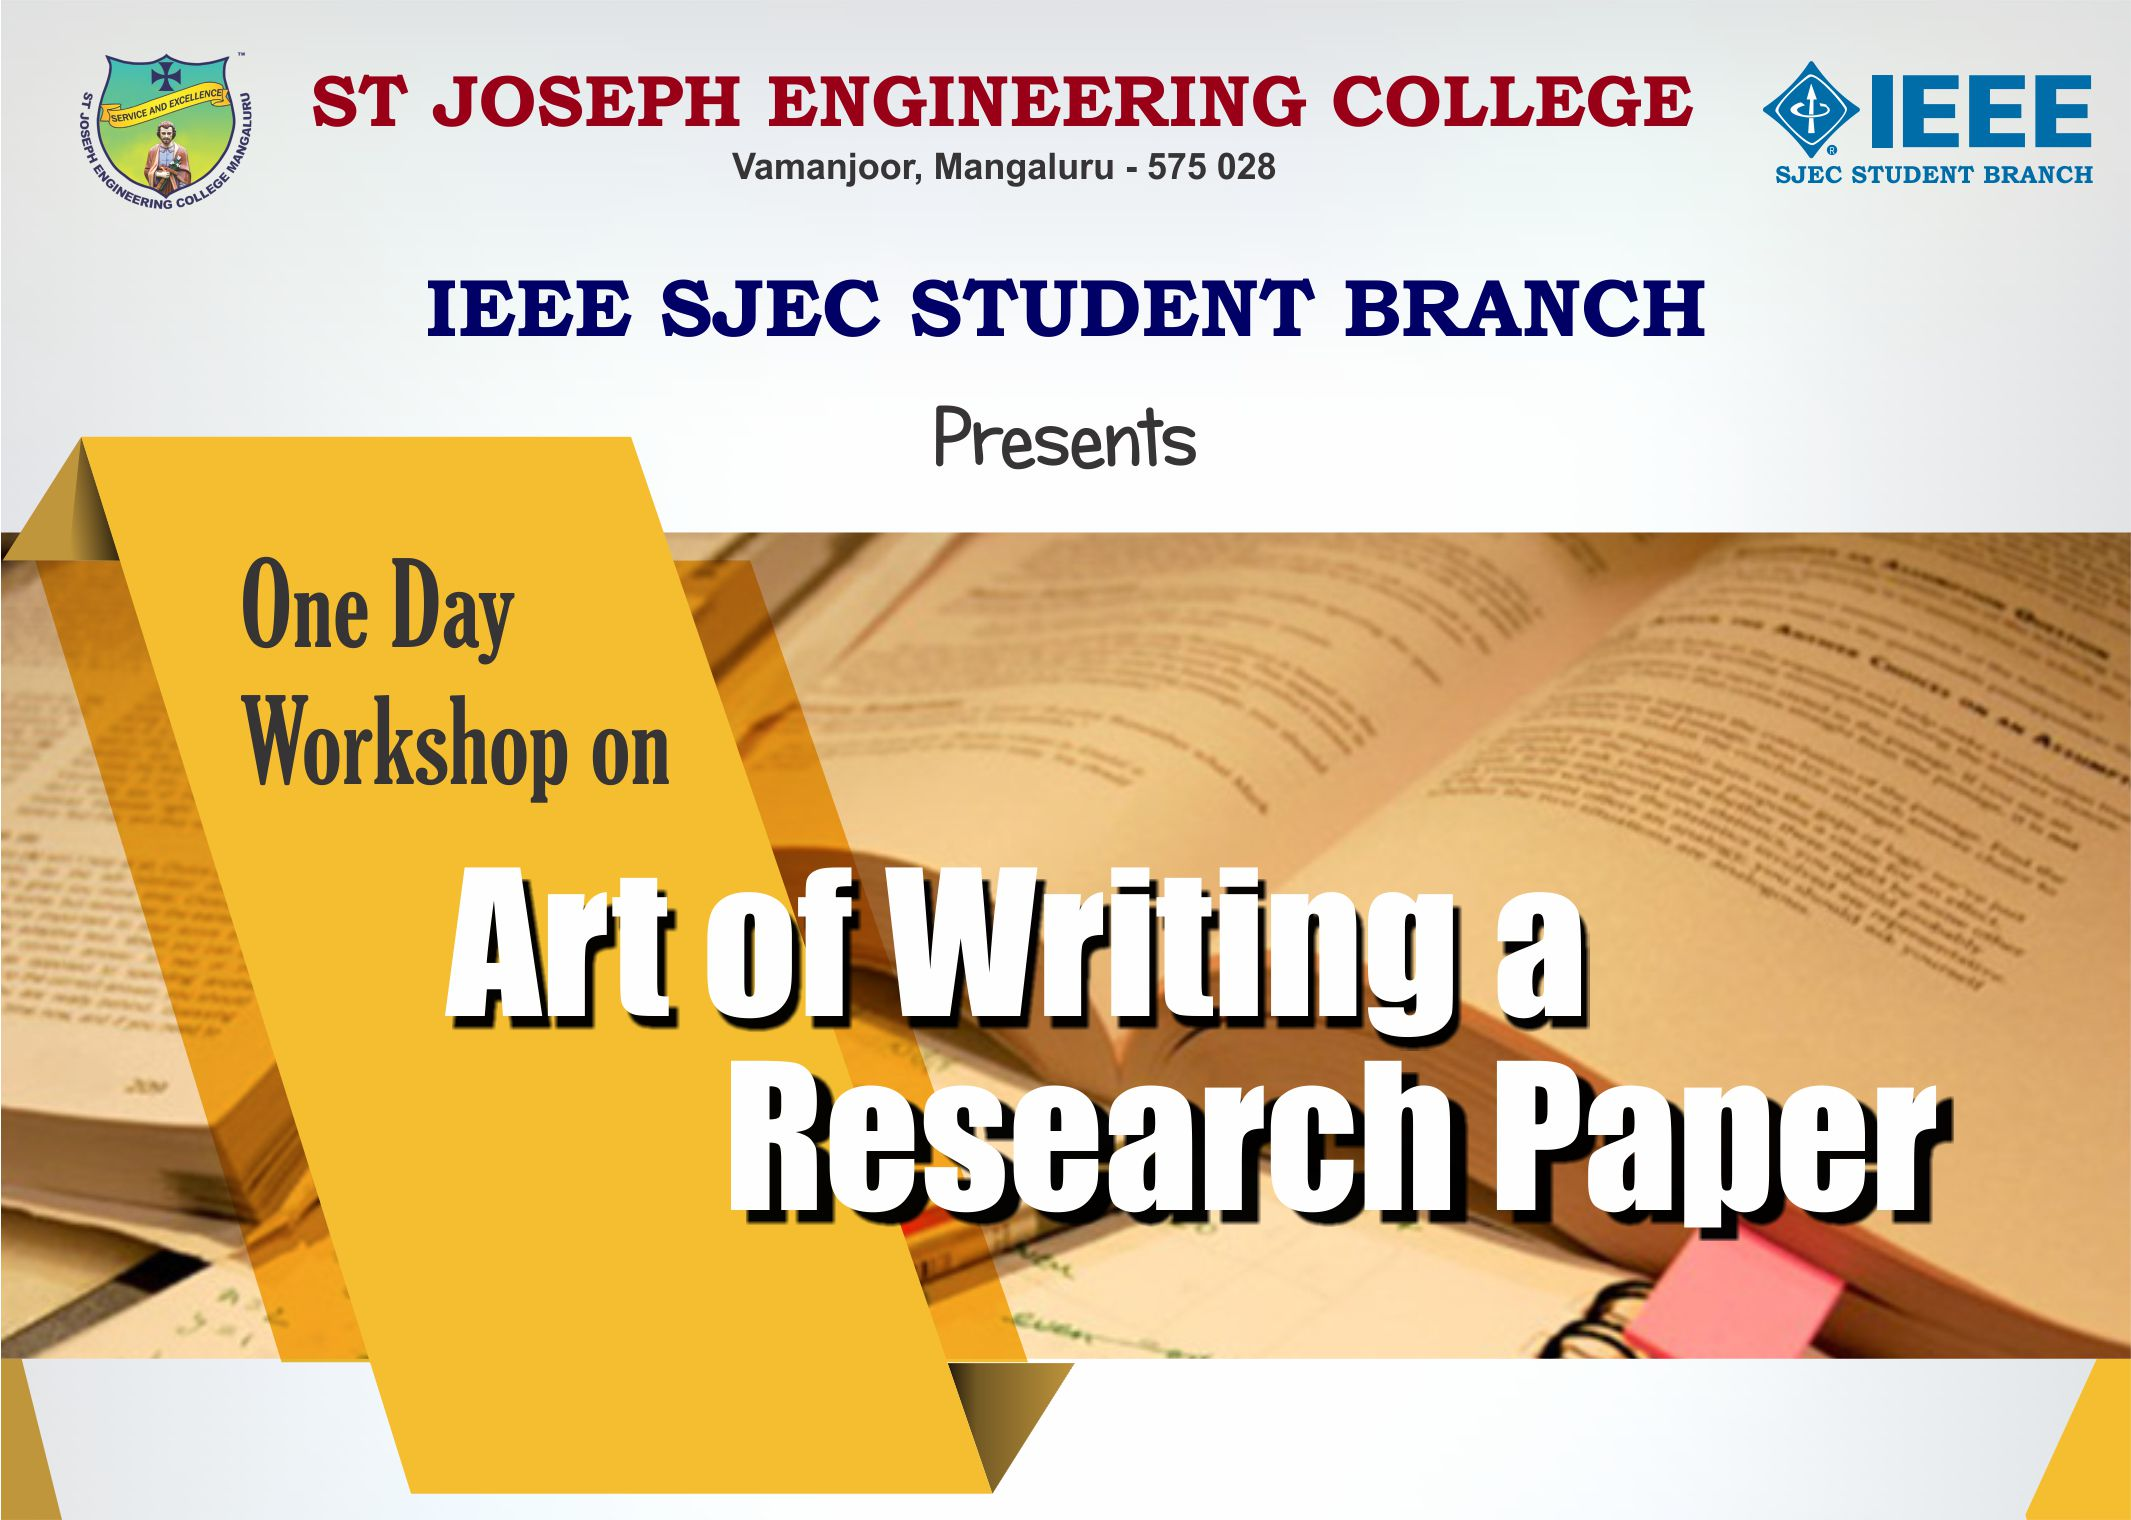 016 Writting Research Paper Workshop Dreaded A Writing Proposal In Day Steps To Introduction Full